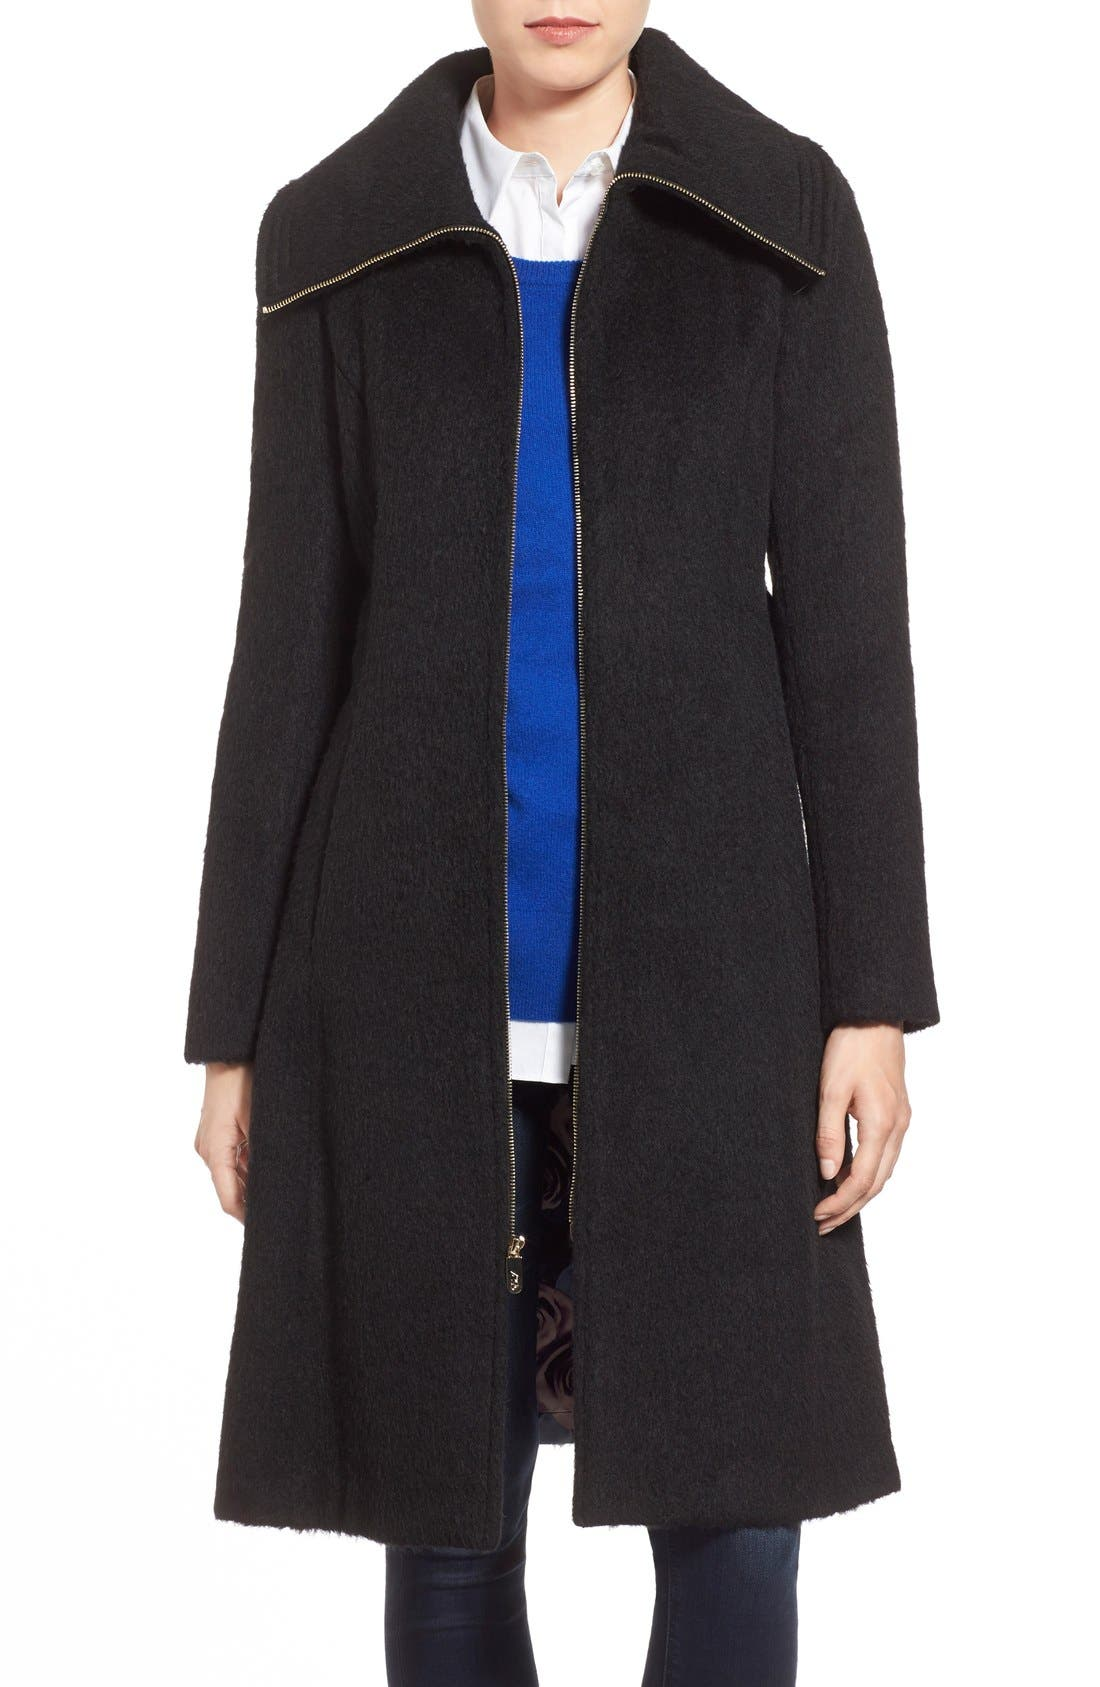 Brushed Wool Blend Fit & Flare Coat,                             Main thumbnail 1, color,